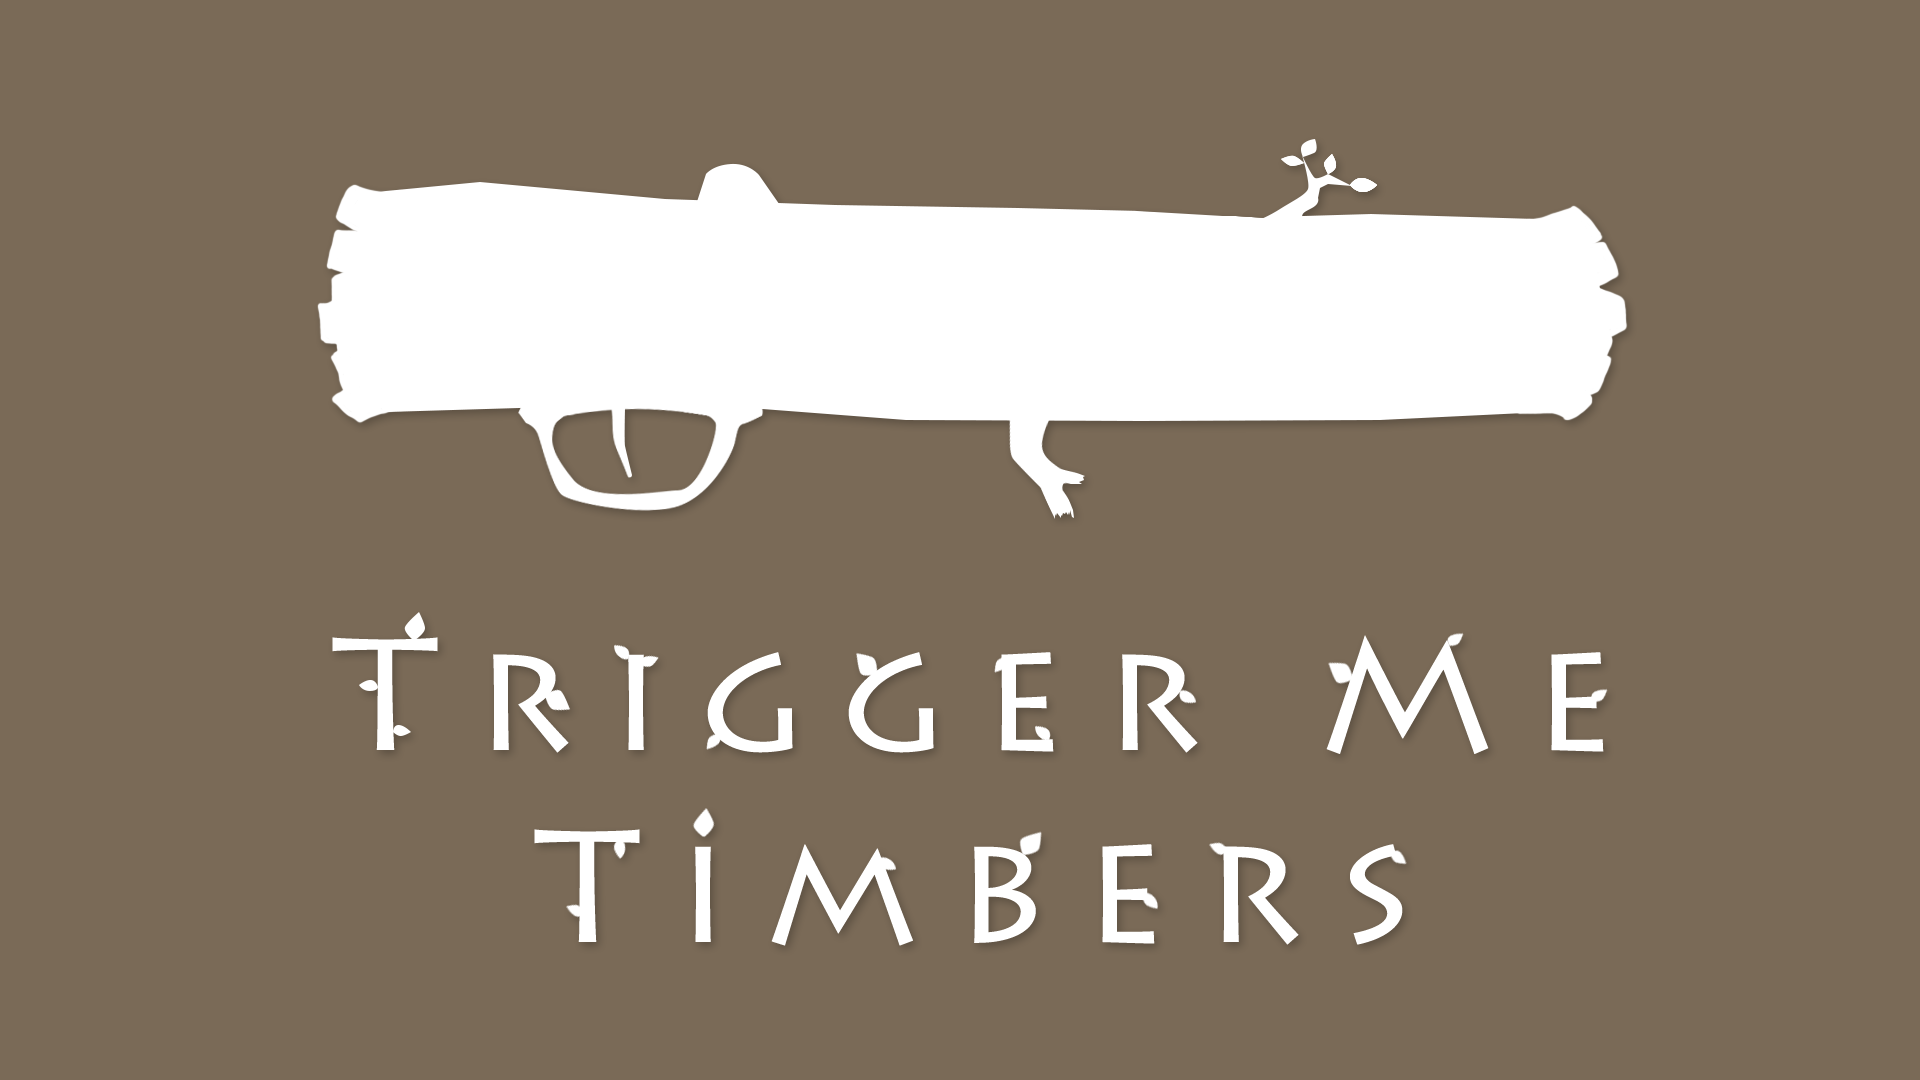 TriggerMeTimbers_1920x1080_WhiteOnBrown